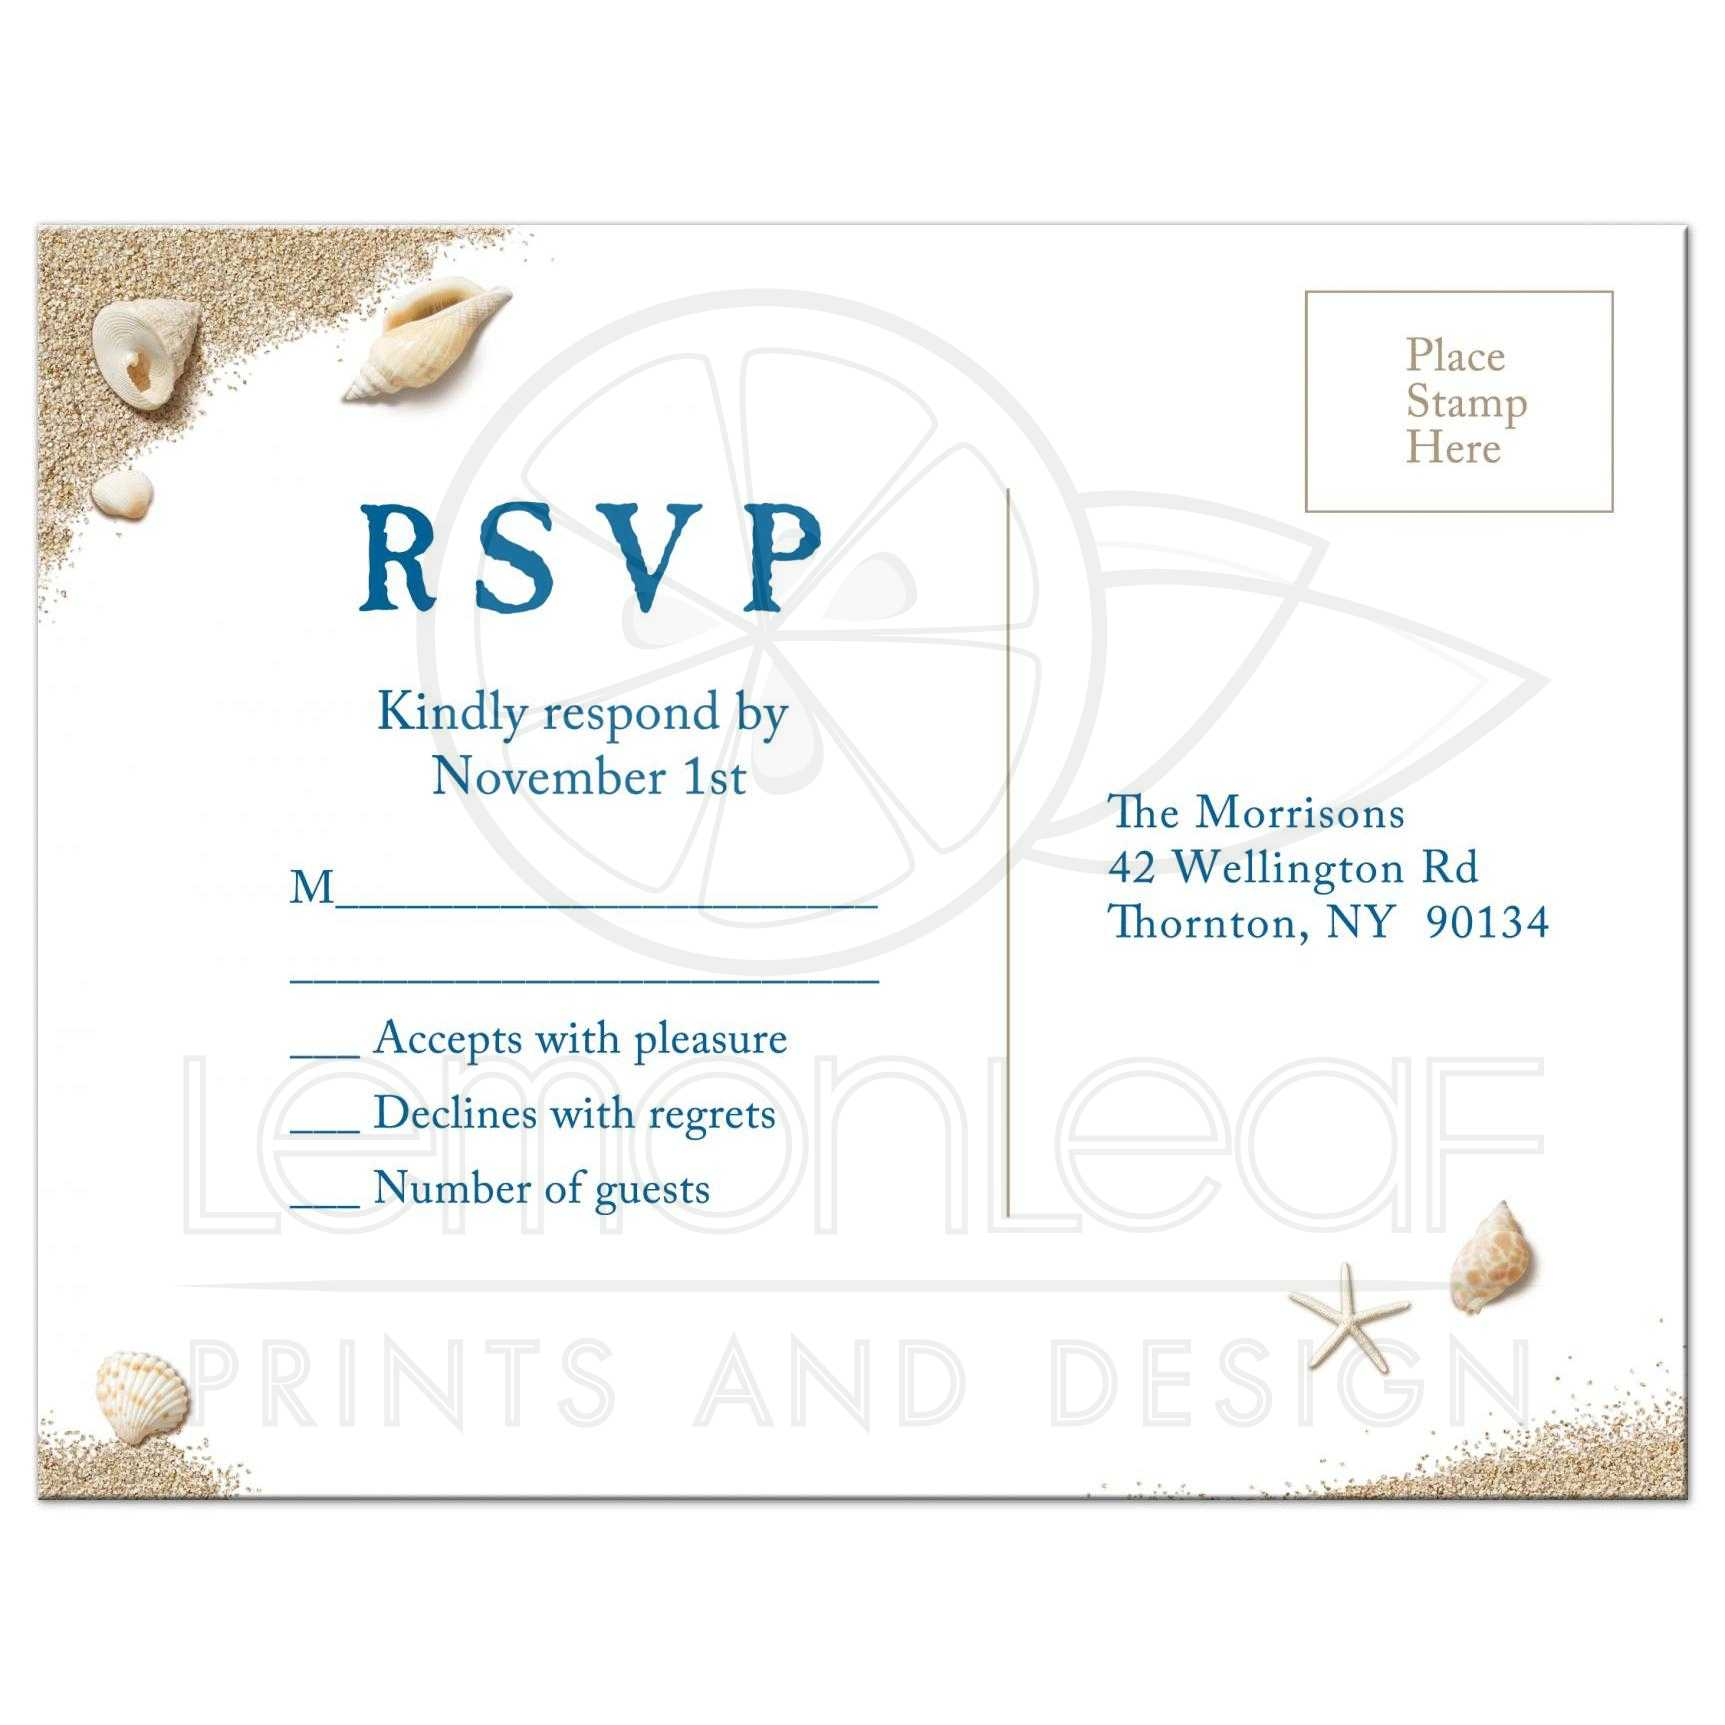 Burlap And Lace Invitations with great invitations ideas